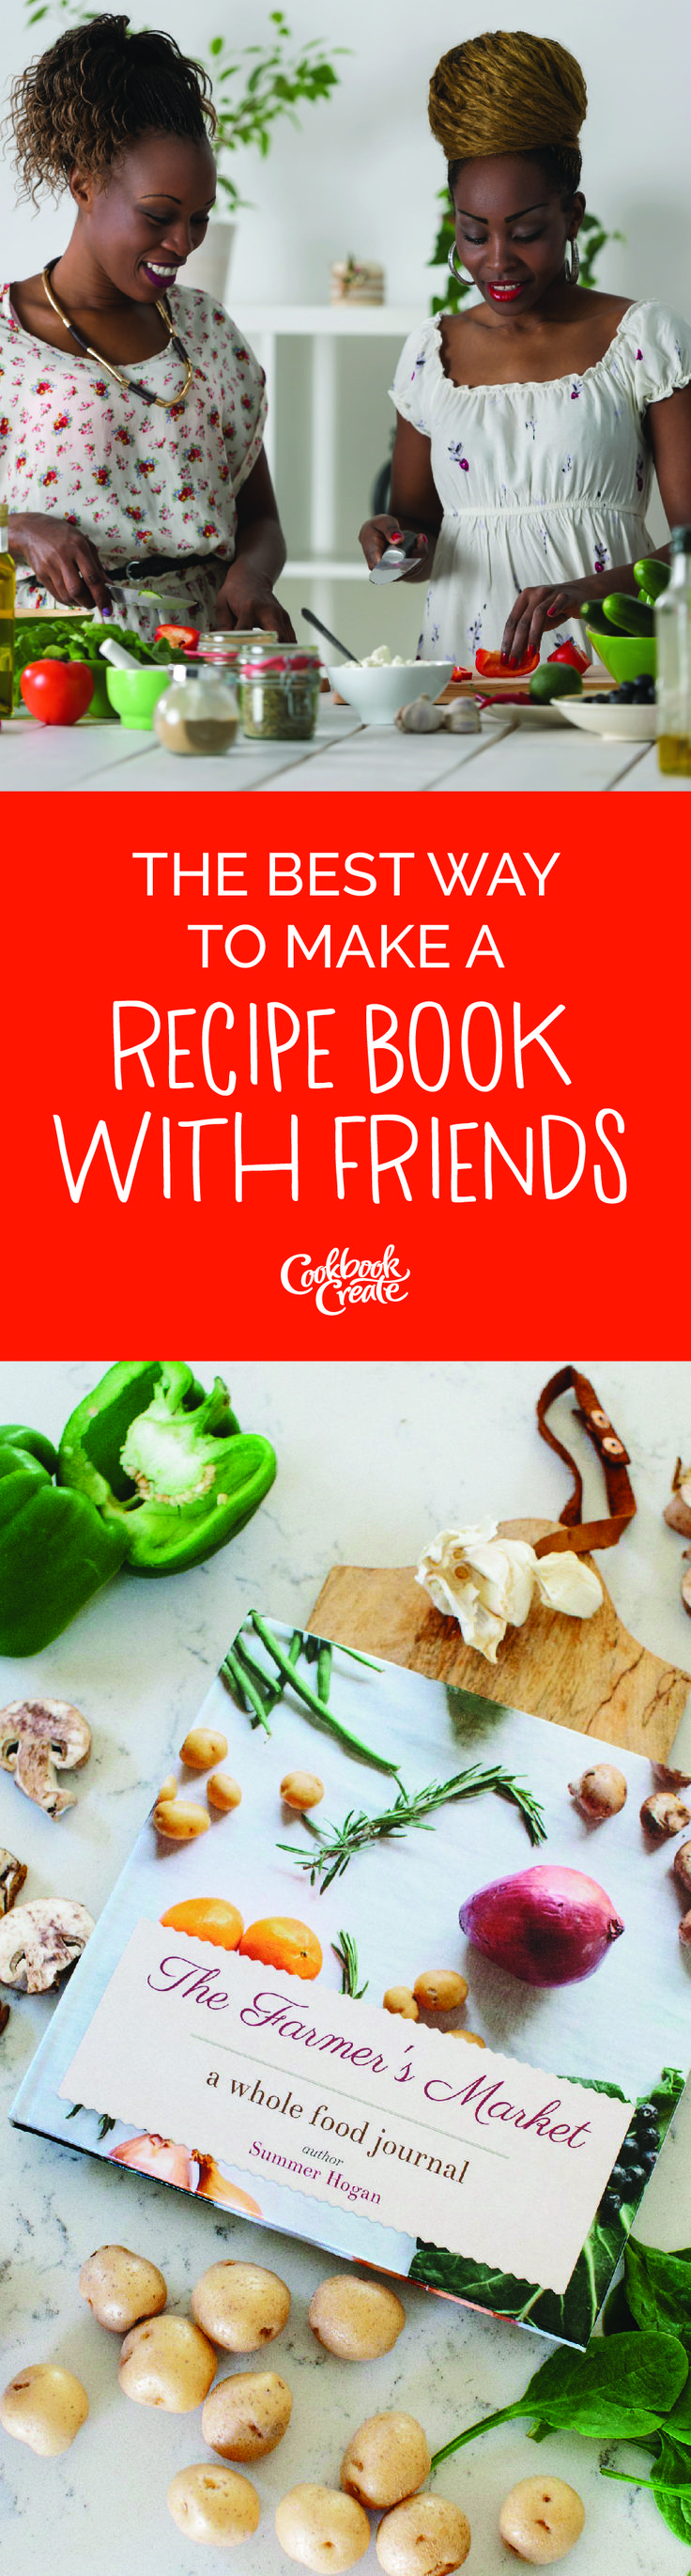 399 best cookbooks images on pinterest recipe books cooking food make a diy cookbook with your groups recipes forumfinder Images